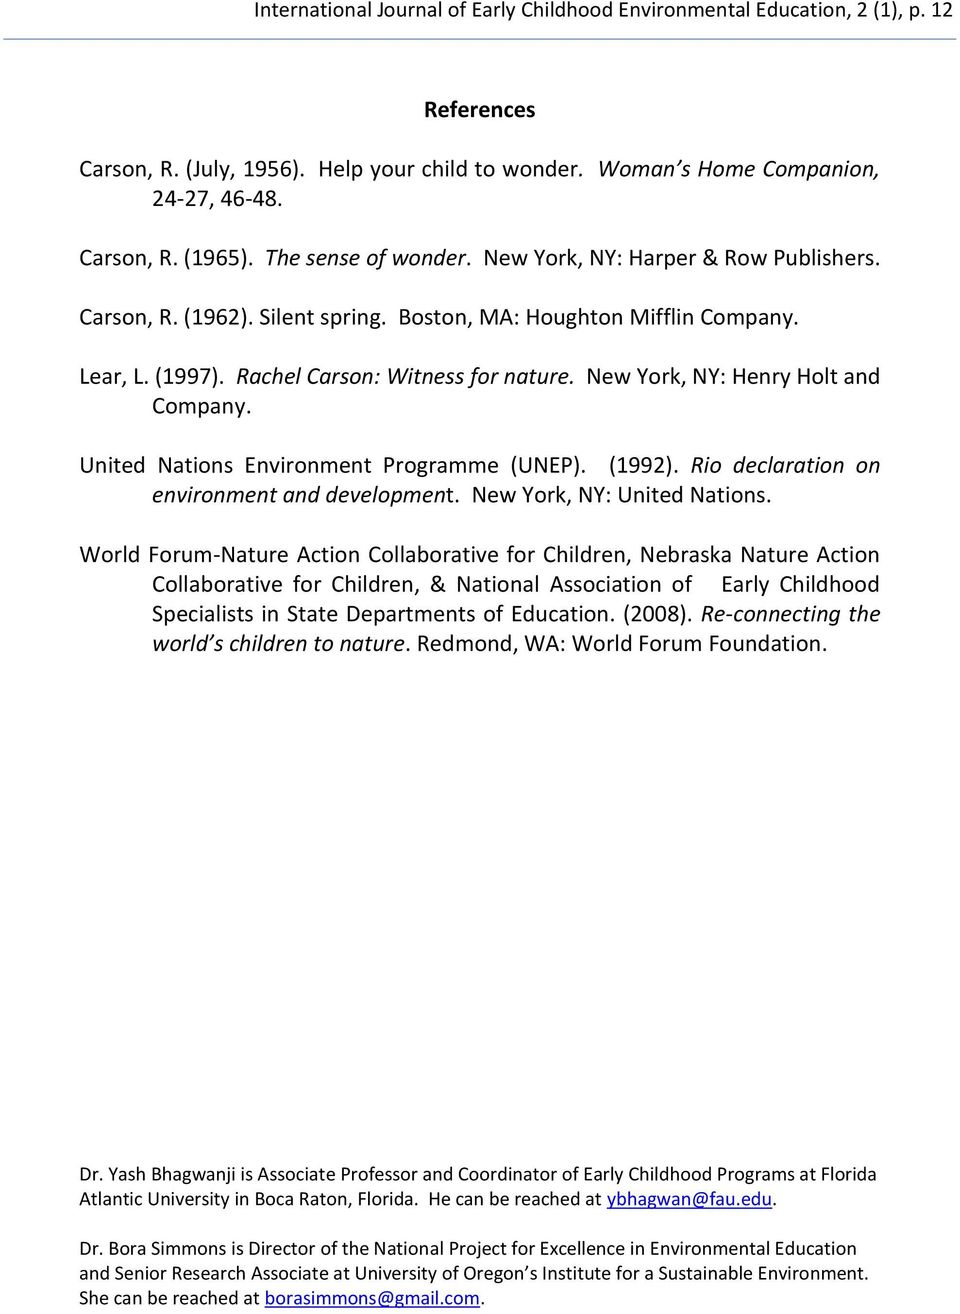 New York, NY: Henry Holt and Company. United Nations Environment Programme (UNEP). (1992). Rio declaration on environment and development. New York, NY: United Nations.